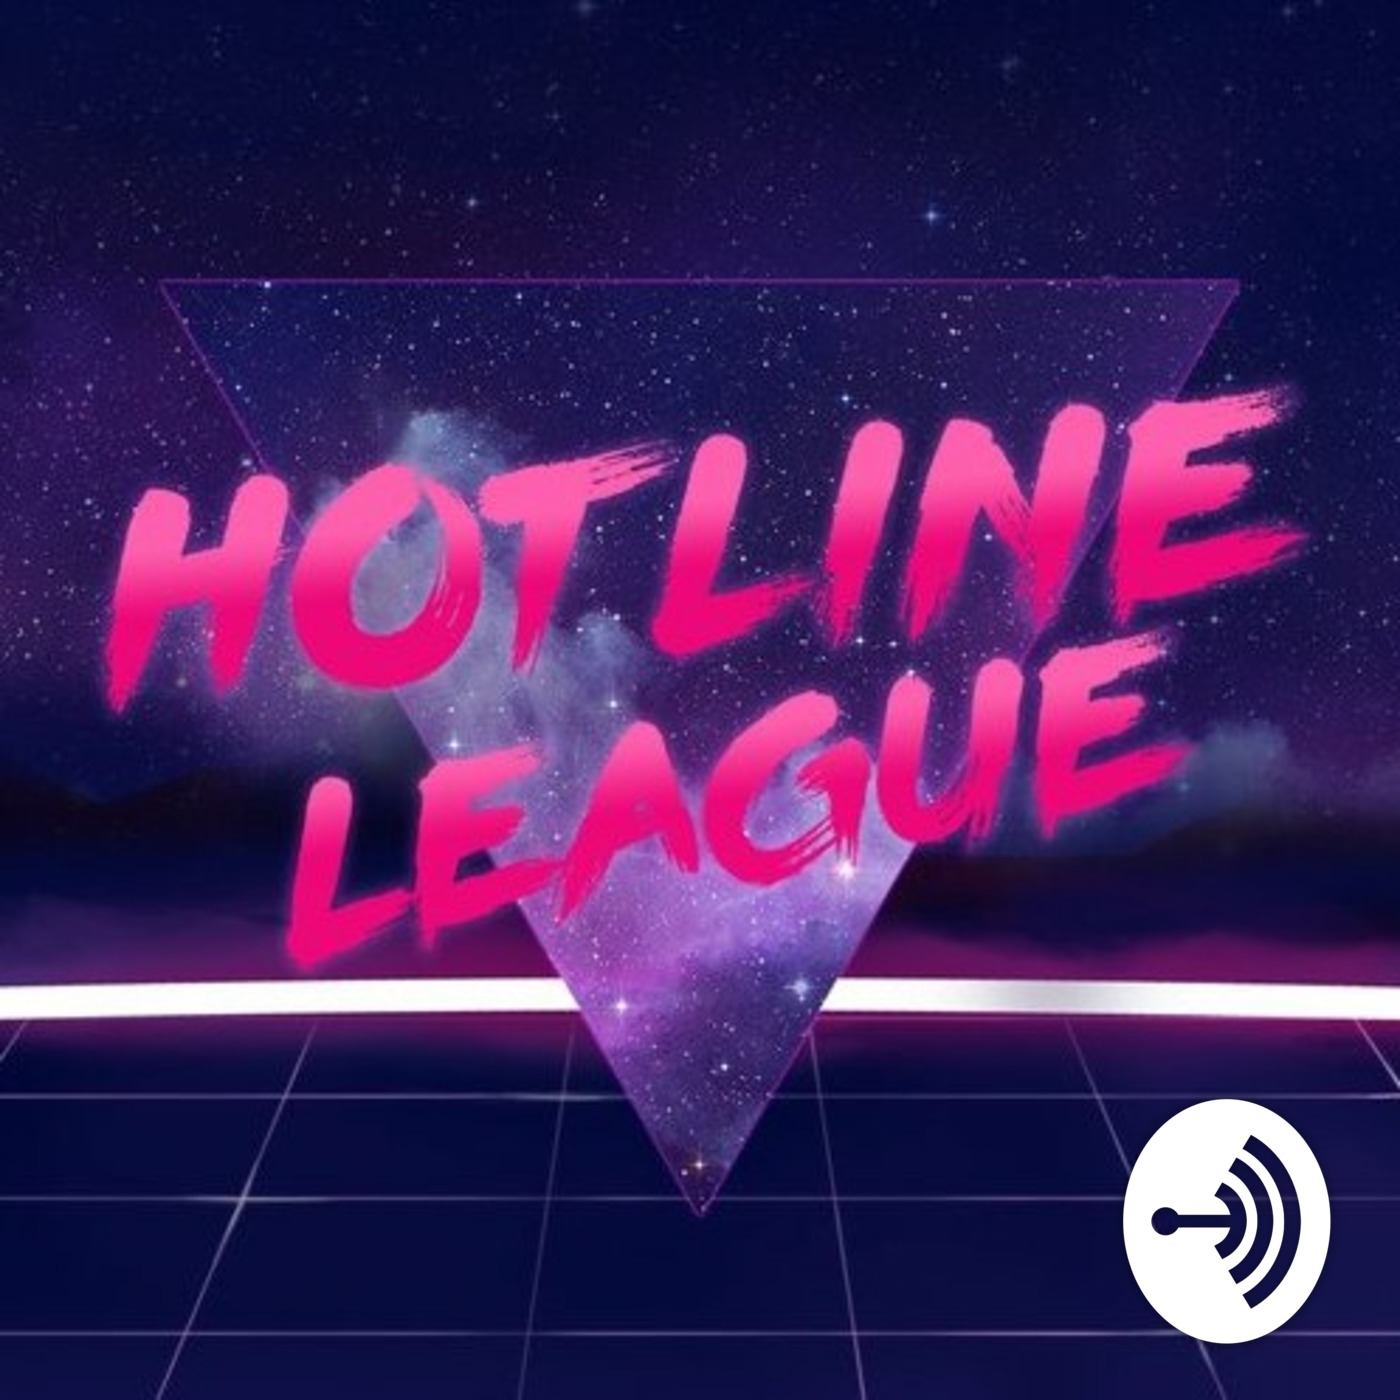 Hotline League